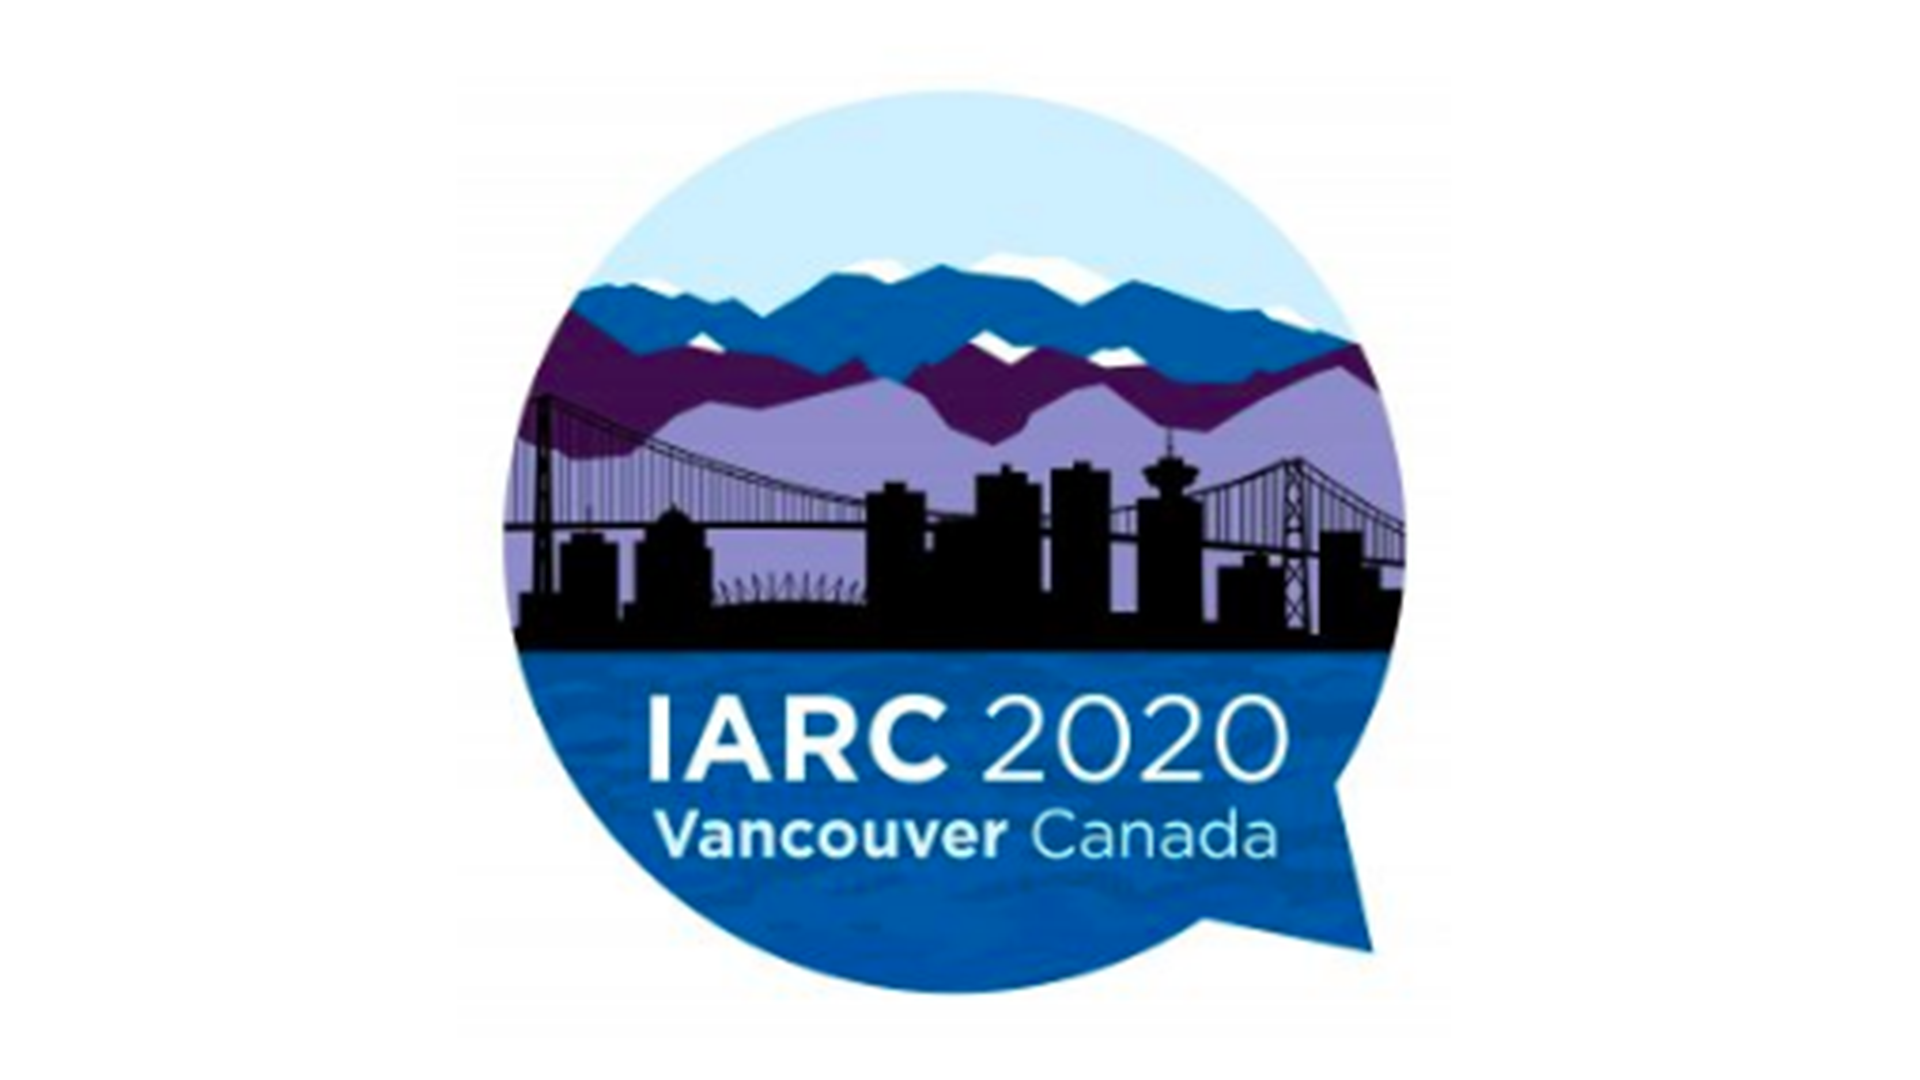 City skyline with IARC text